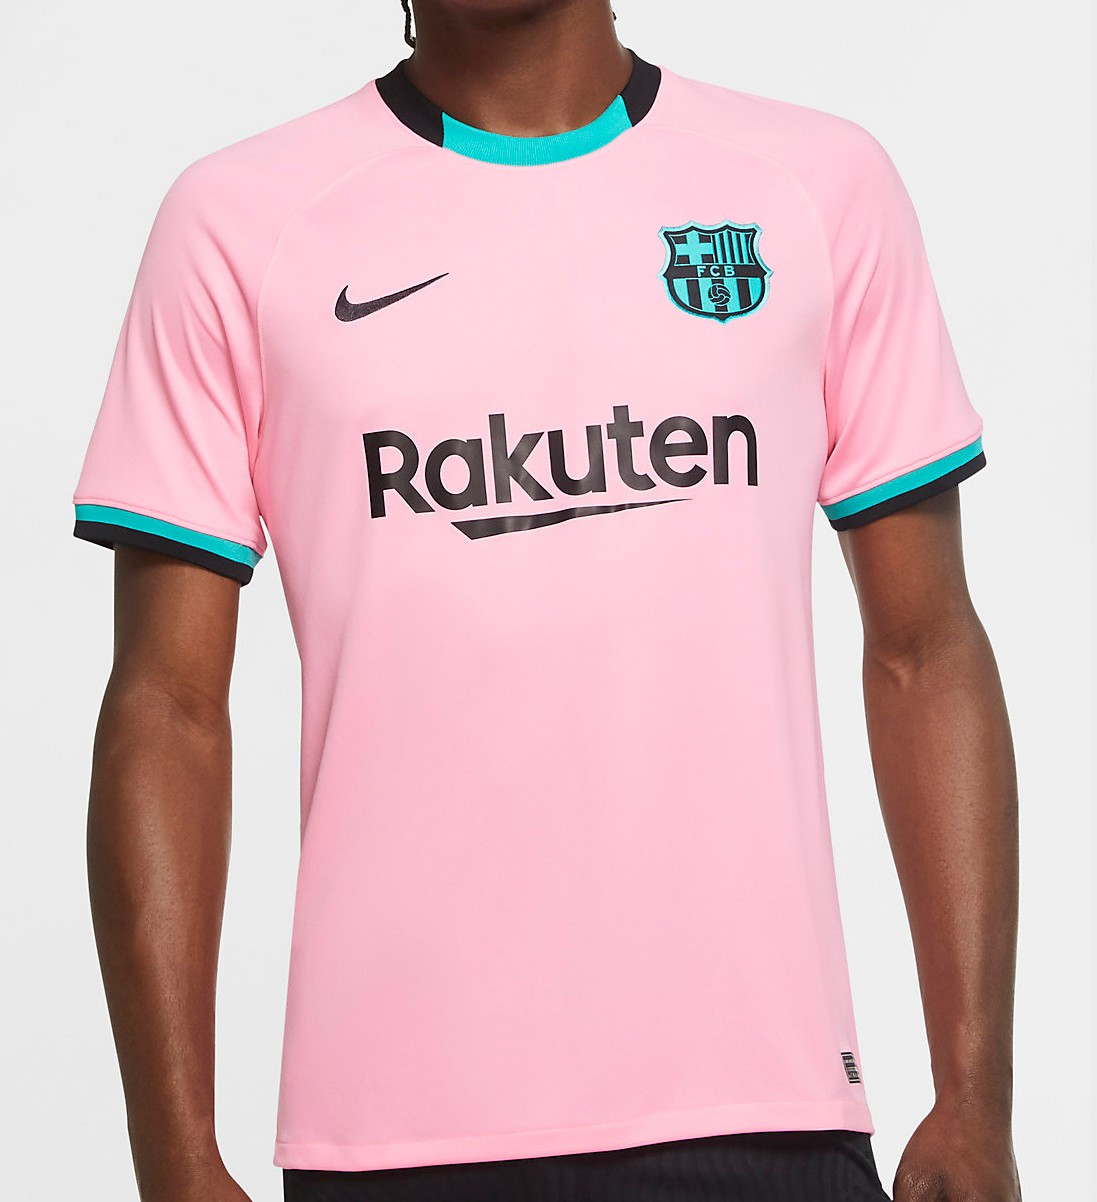 fc barcelona 2020 21 third kit fc barcelona 2020 21 third kit